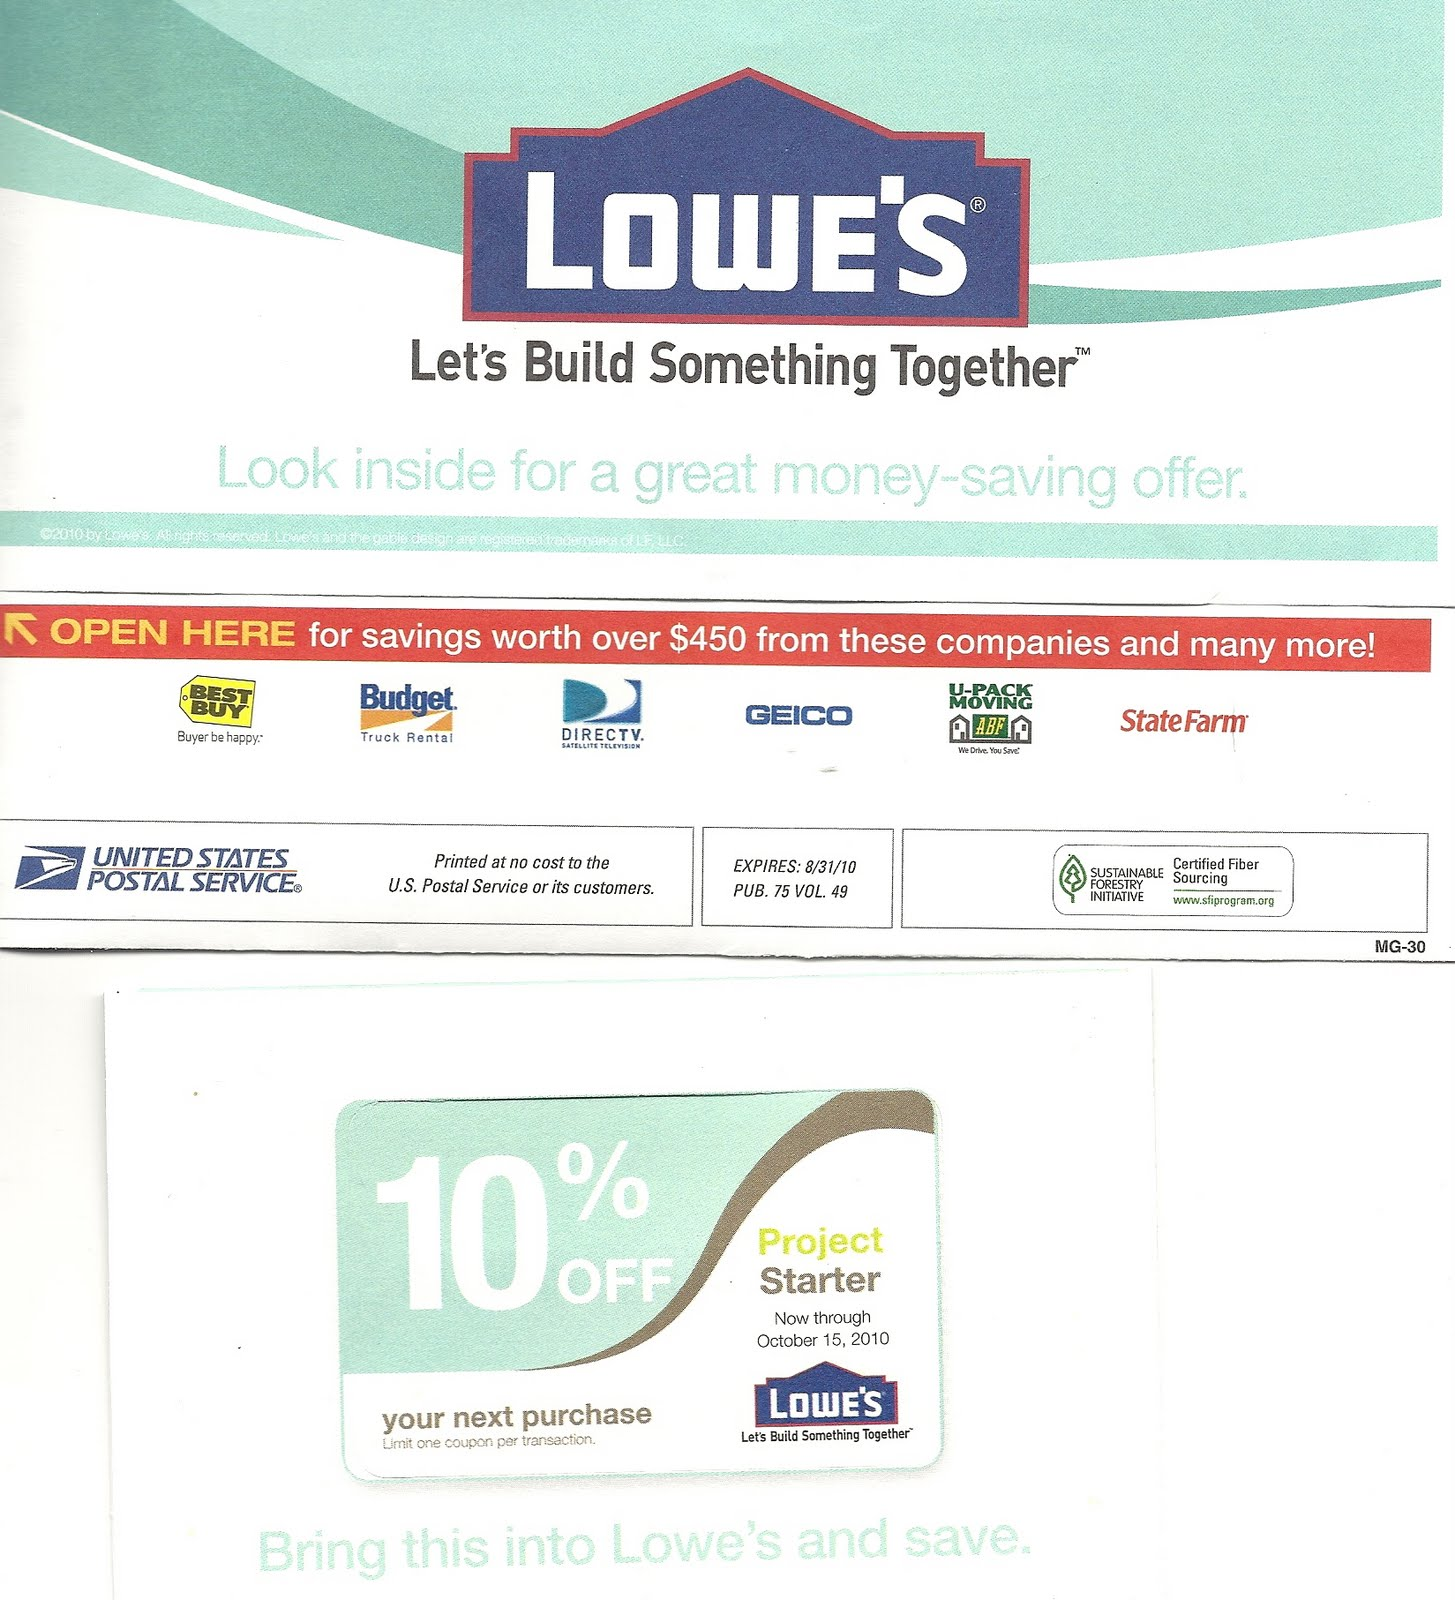 Lowes Coupon Has Been Reissued In The Usps Moving Kit